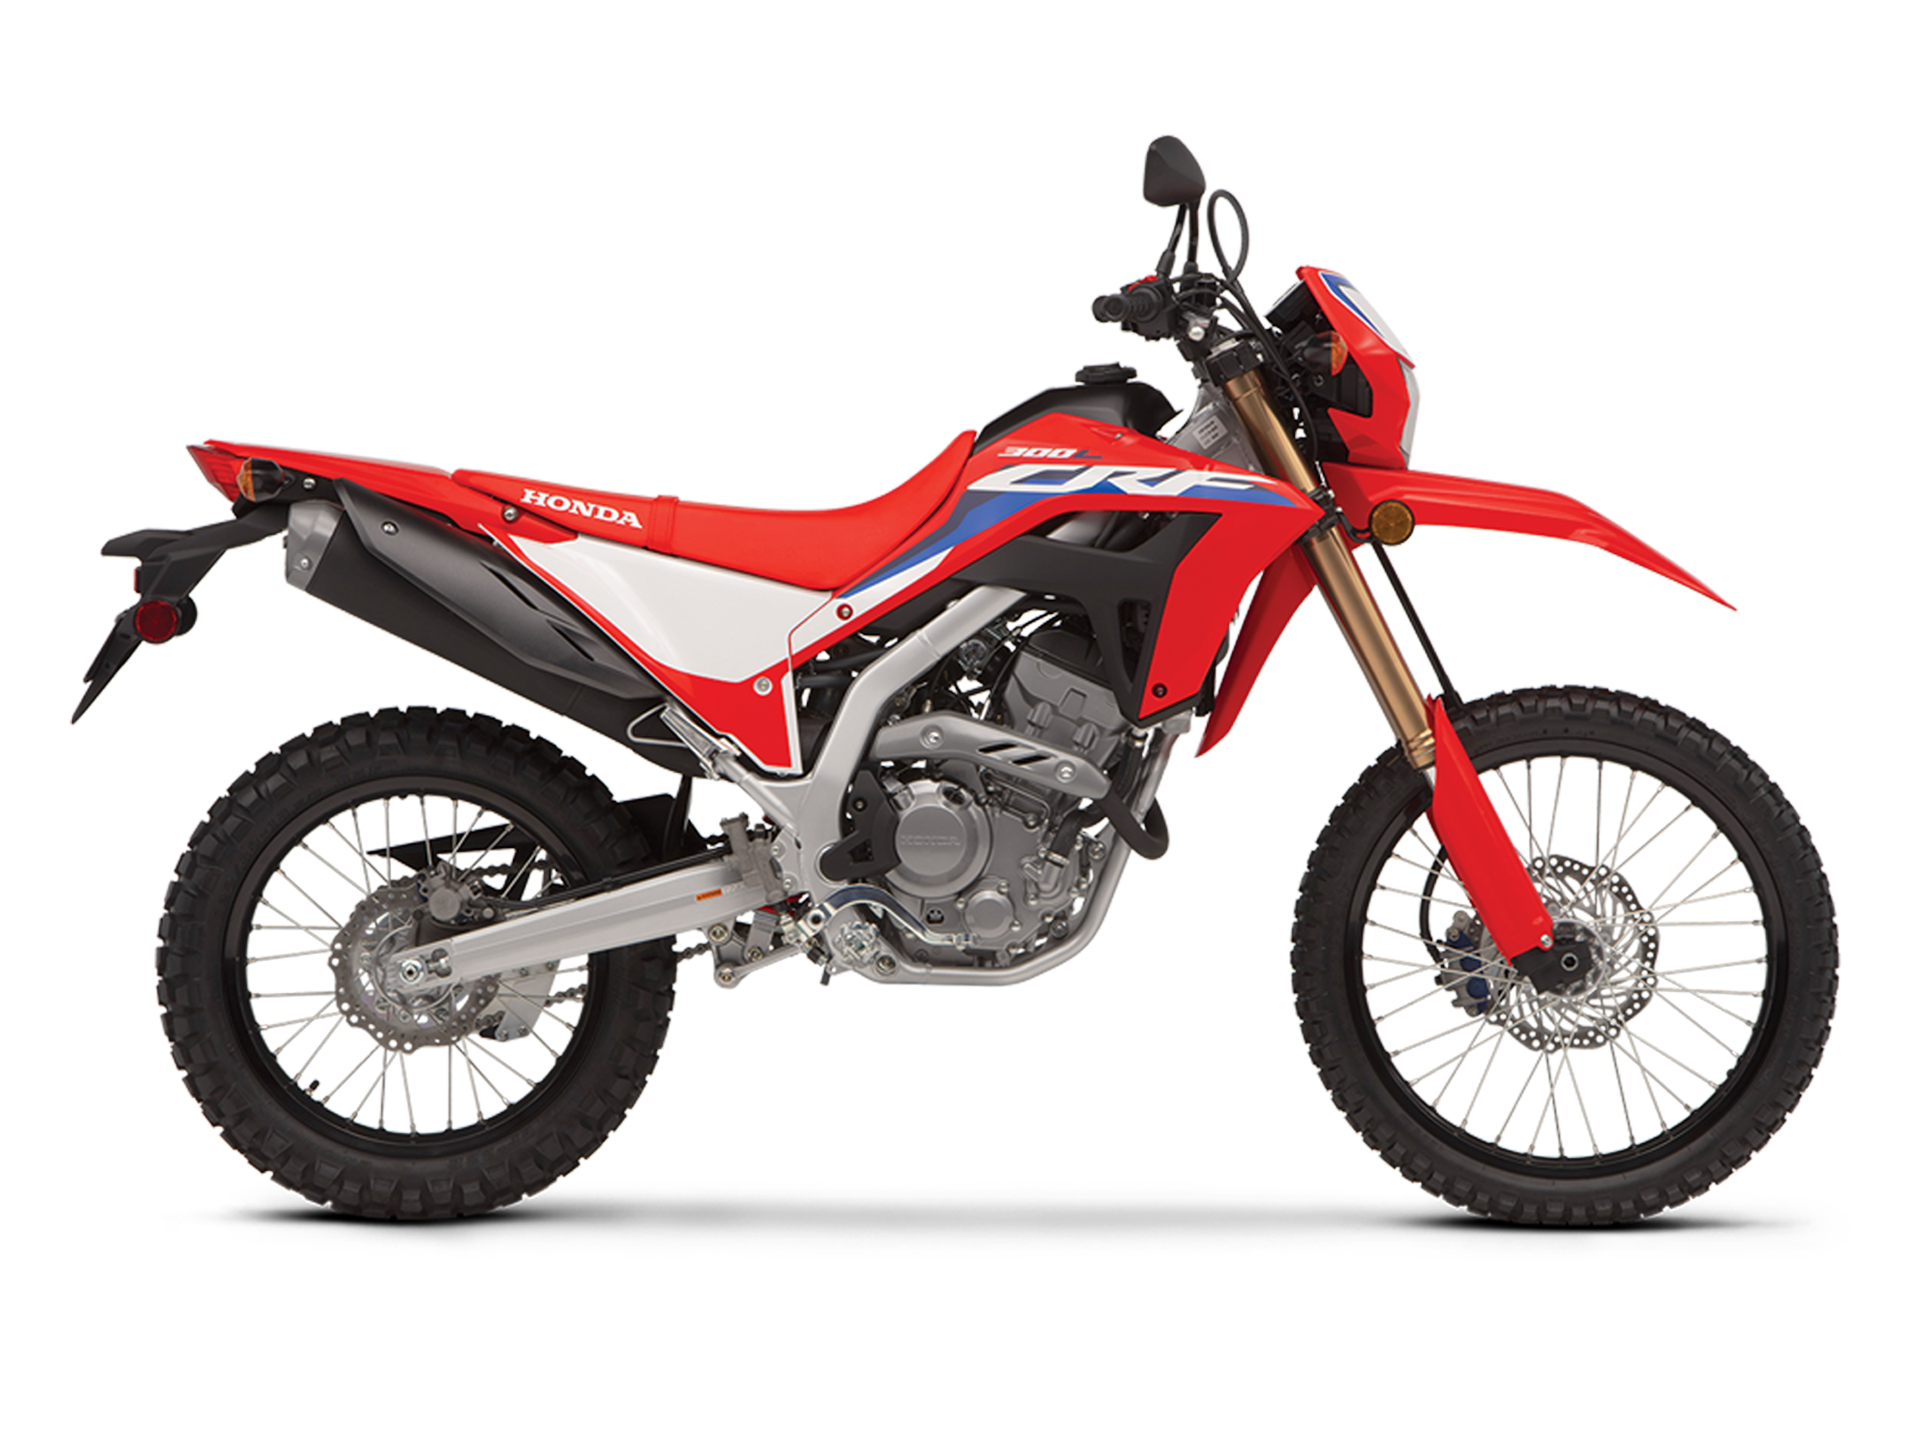 2020 Honda CRF250L Side View In Red